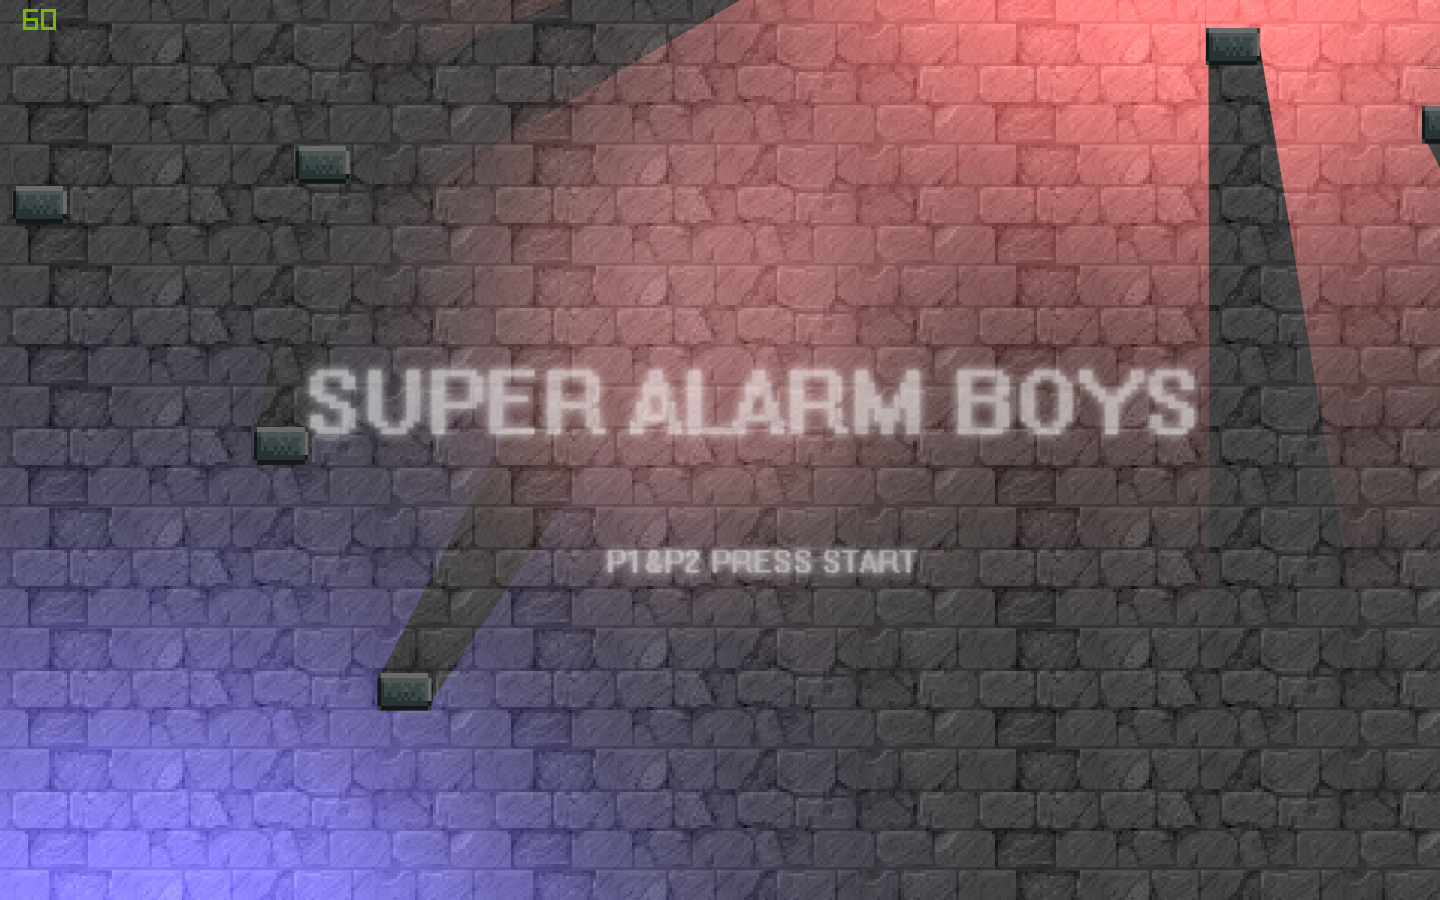 Super Alarm Boys